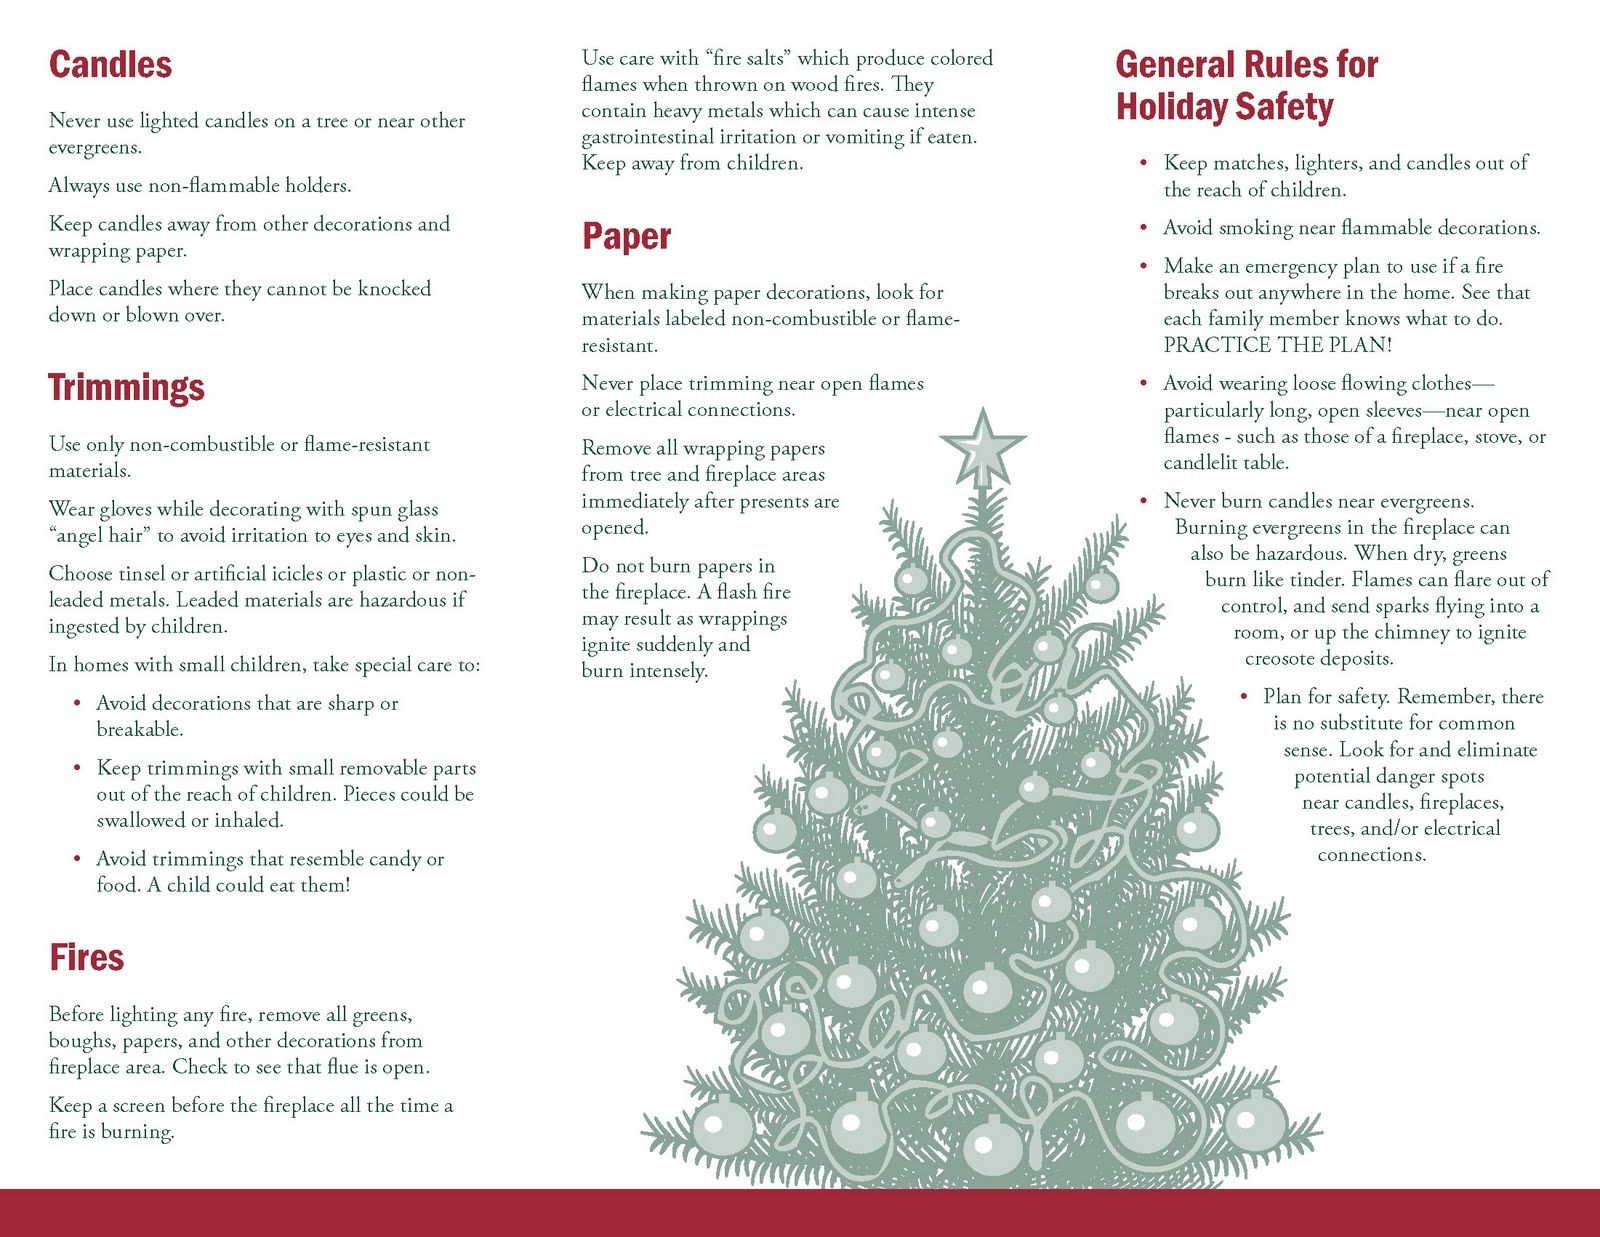 Christmas Decoration Safety Tips, 1600x1237 in 327KB | H